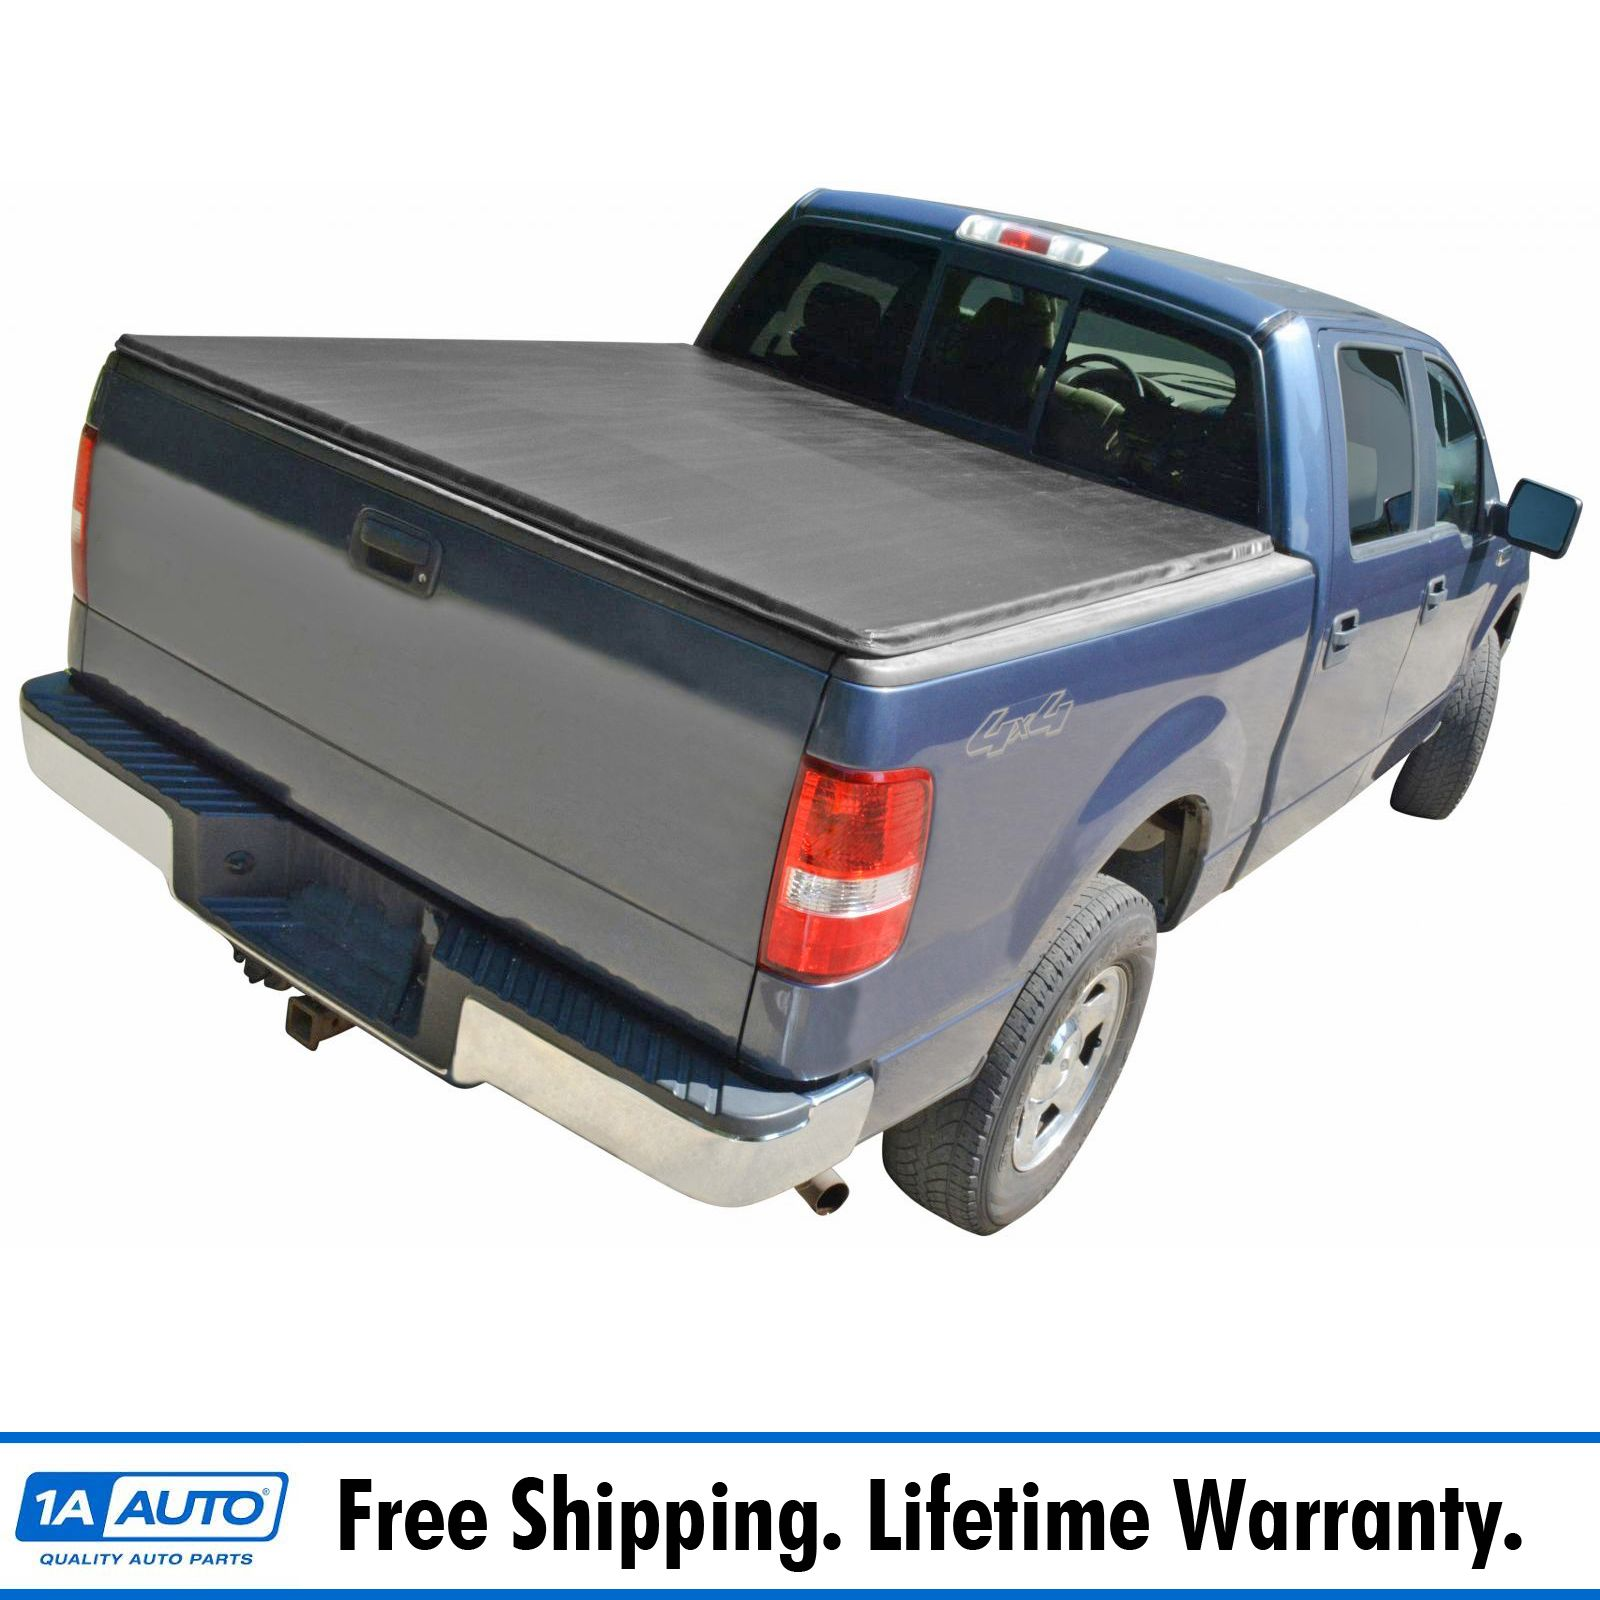 Tundra Tonneau Cover >> Details About Tonneau Cover Hidden Snap For Toyota Tundra Crewmax Pickup Truck 5 5ft Short Bed